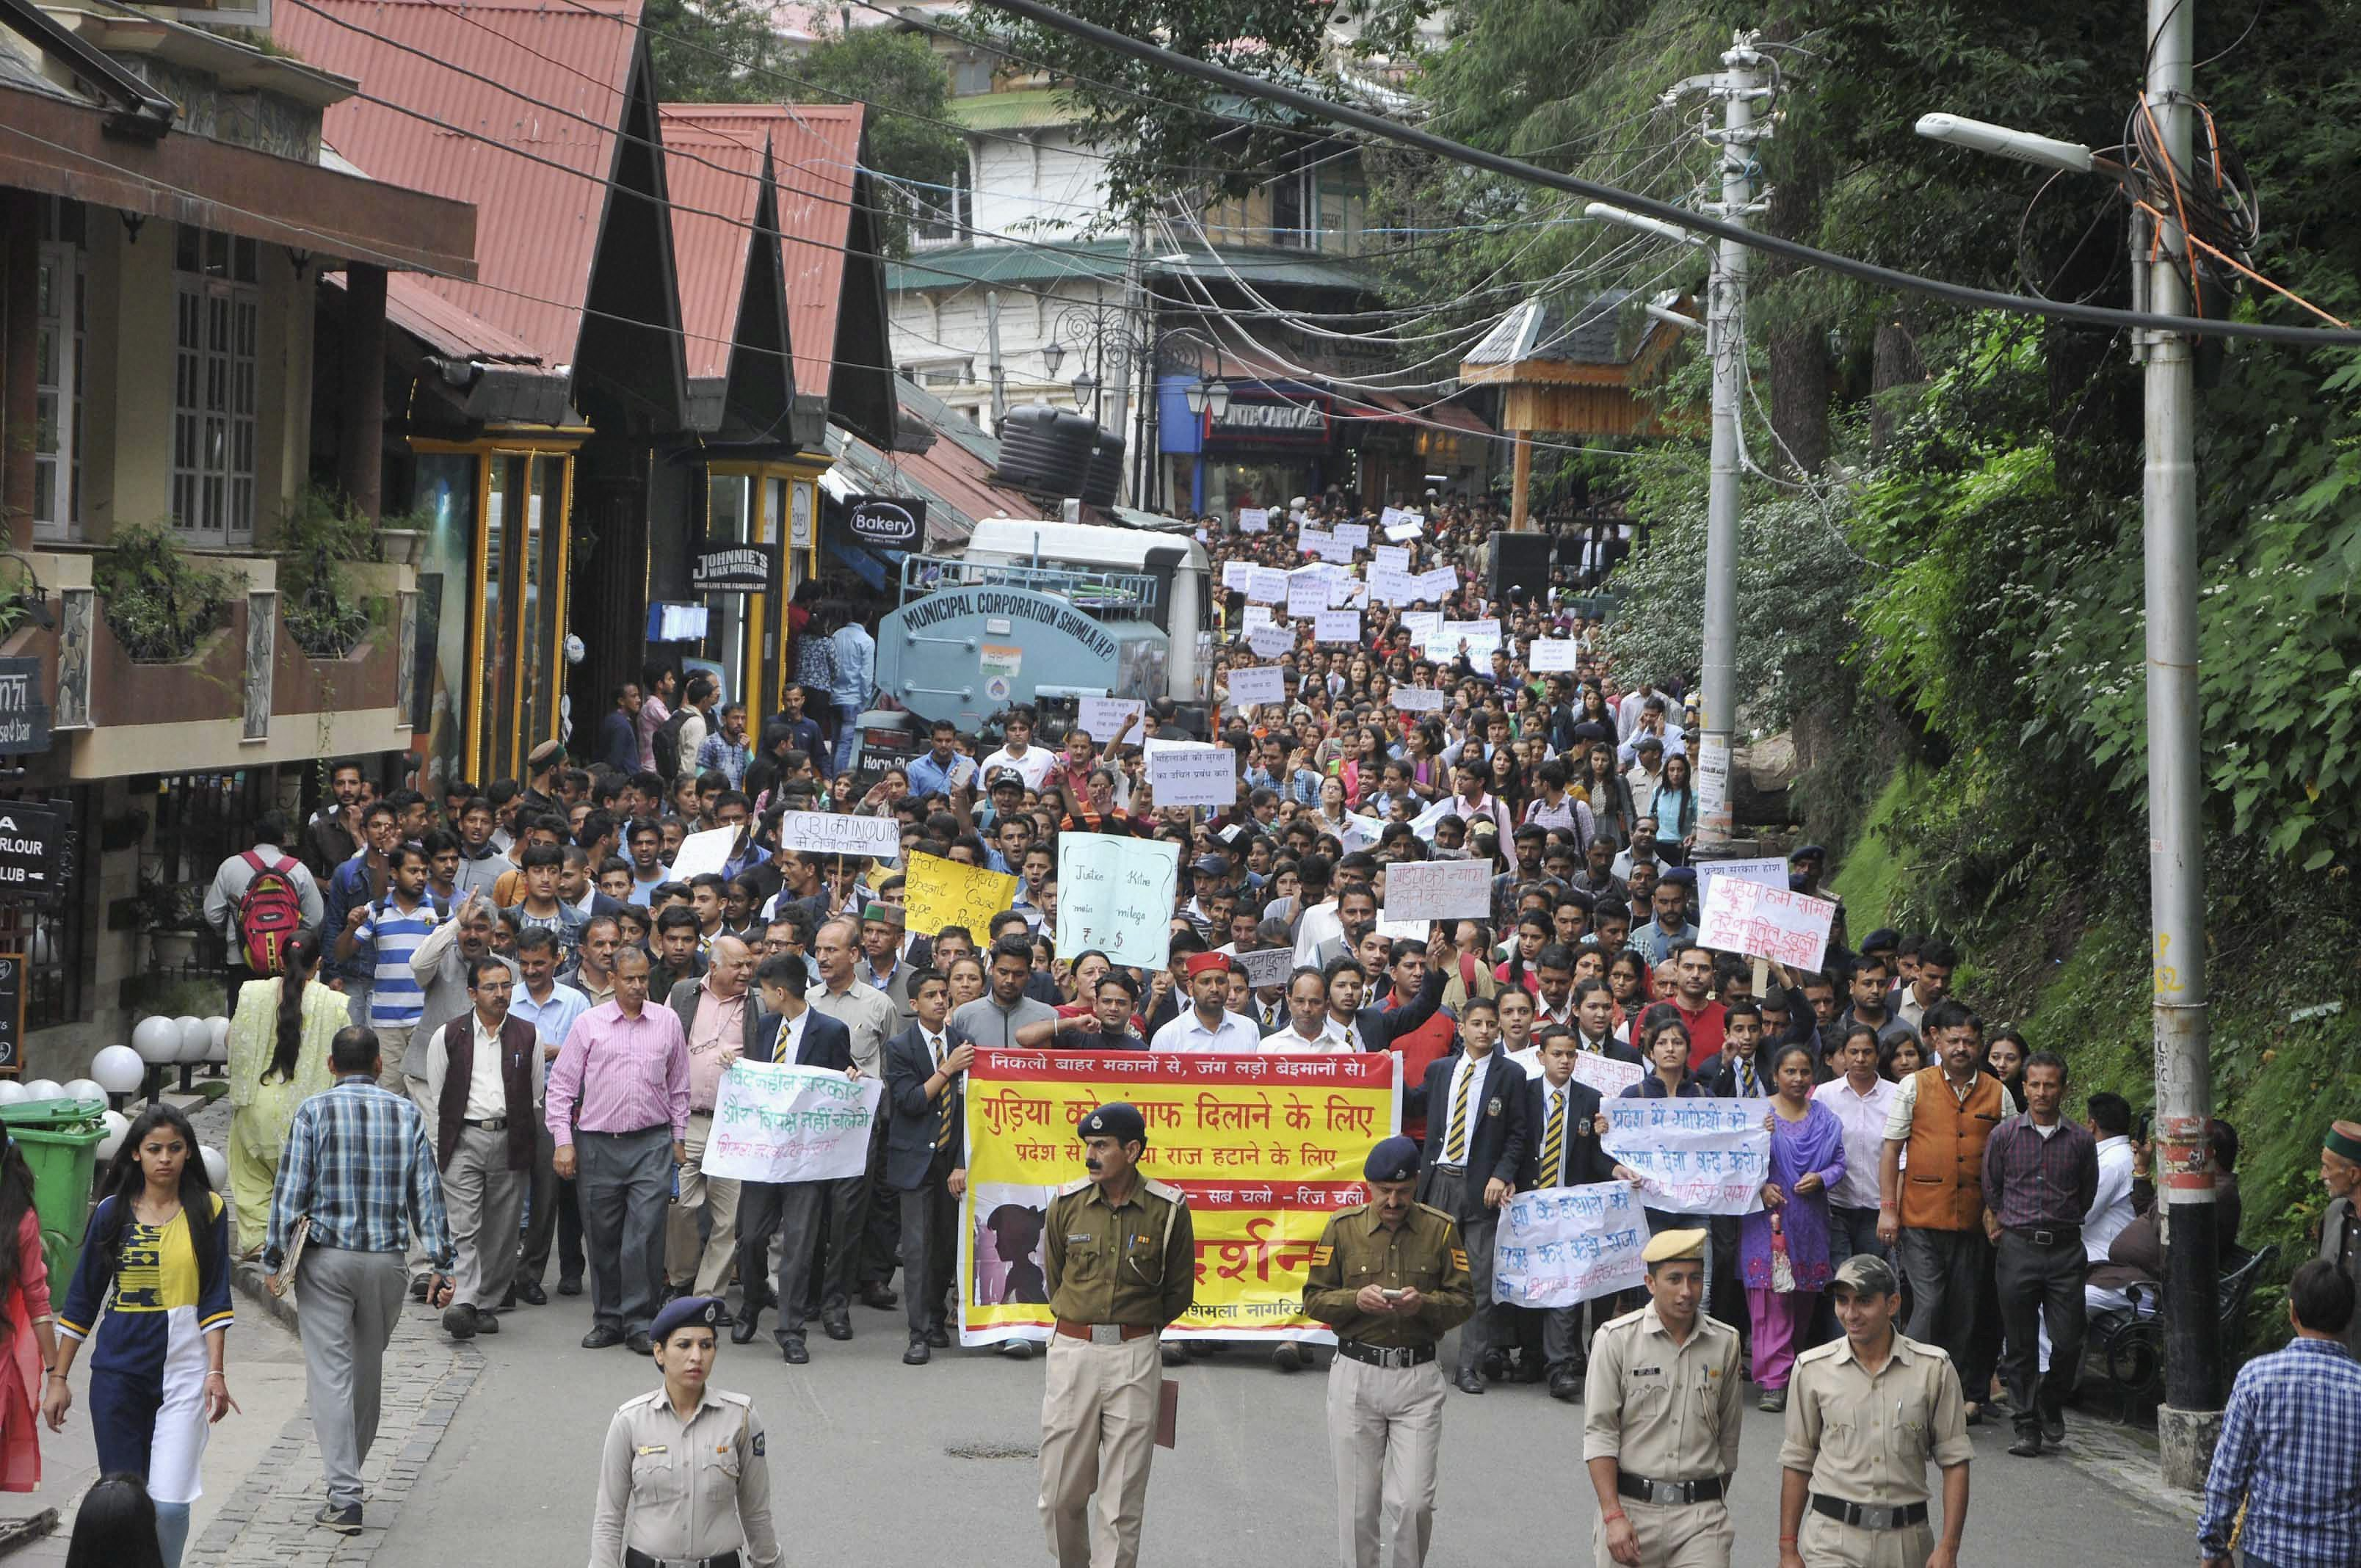 RPT--Shimla: People hold placards and raise slogans during a protest demanding justice for the 16-year old school girl who was raped and murdered, at Rajbhawan in Shimla on Tuesday. PTI Photo  (PTI7_18_2017_000144B) *** Local Caption ***